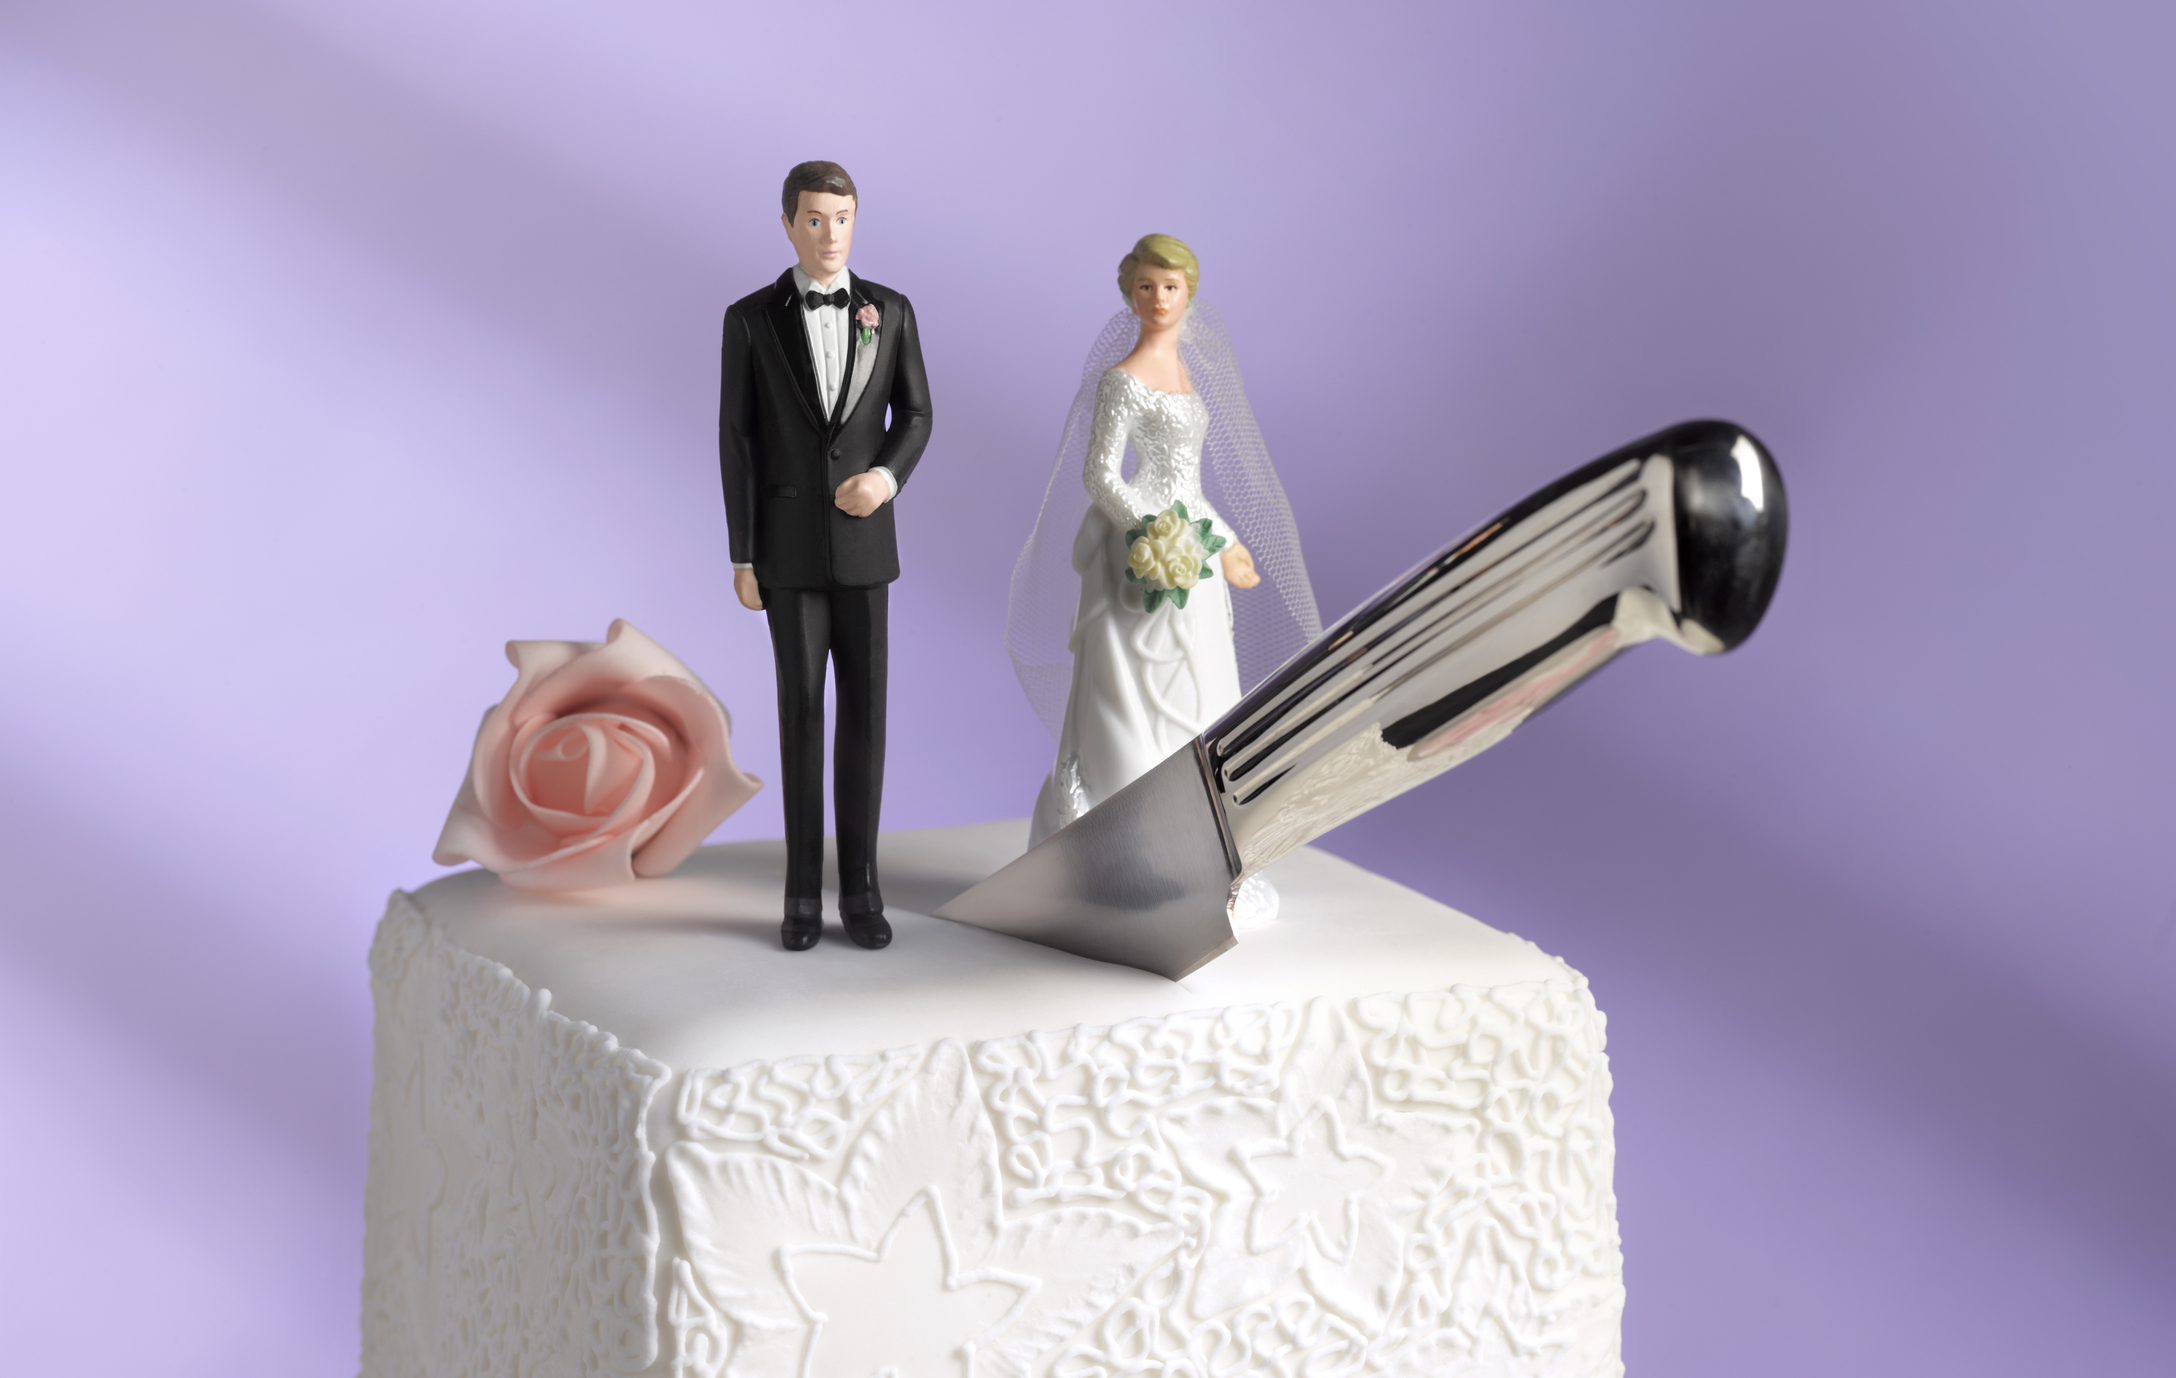 Divorce rates for newlyweds drop by half in the last 25 years, experts say